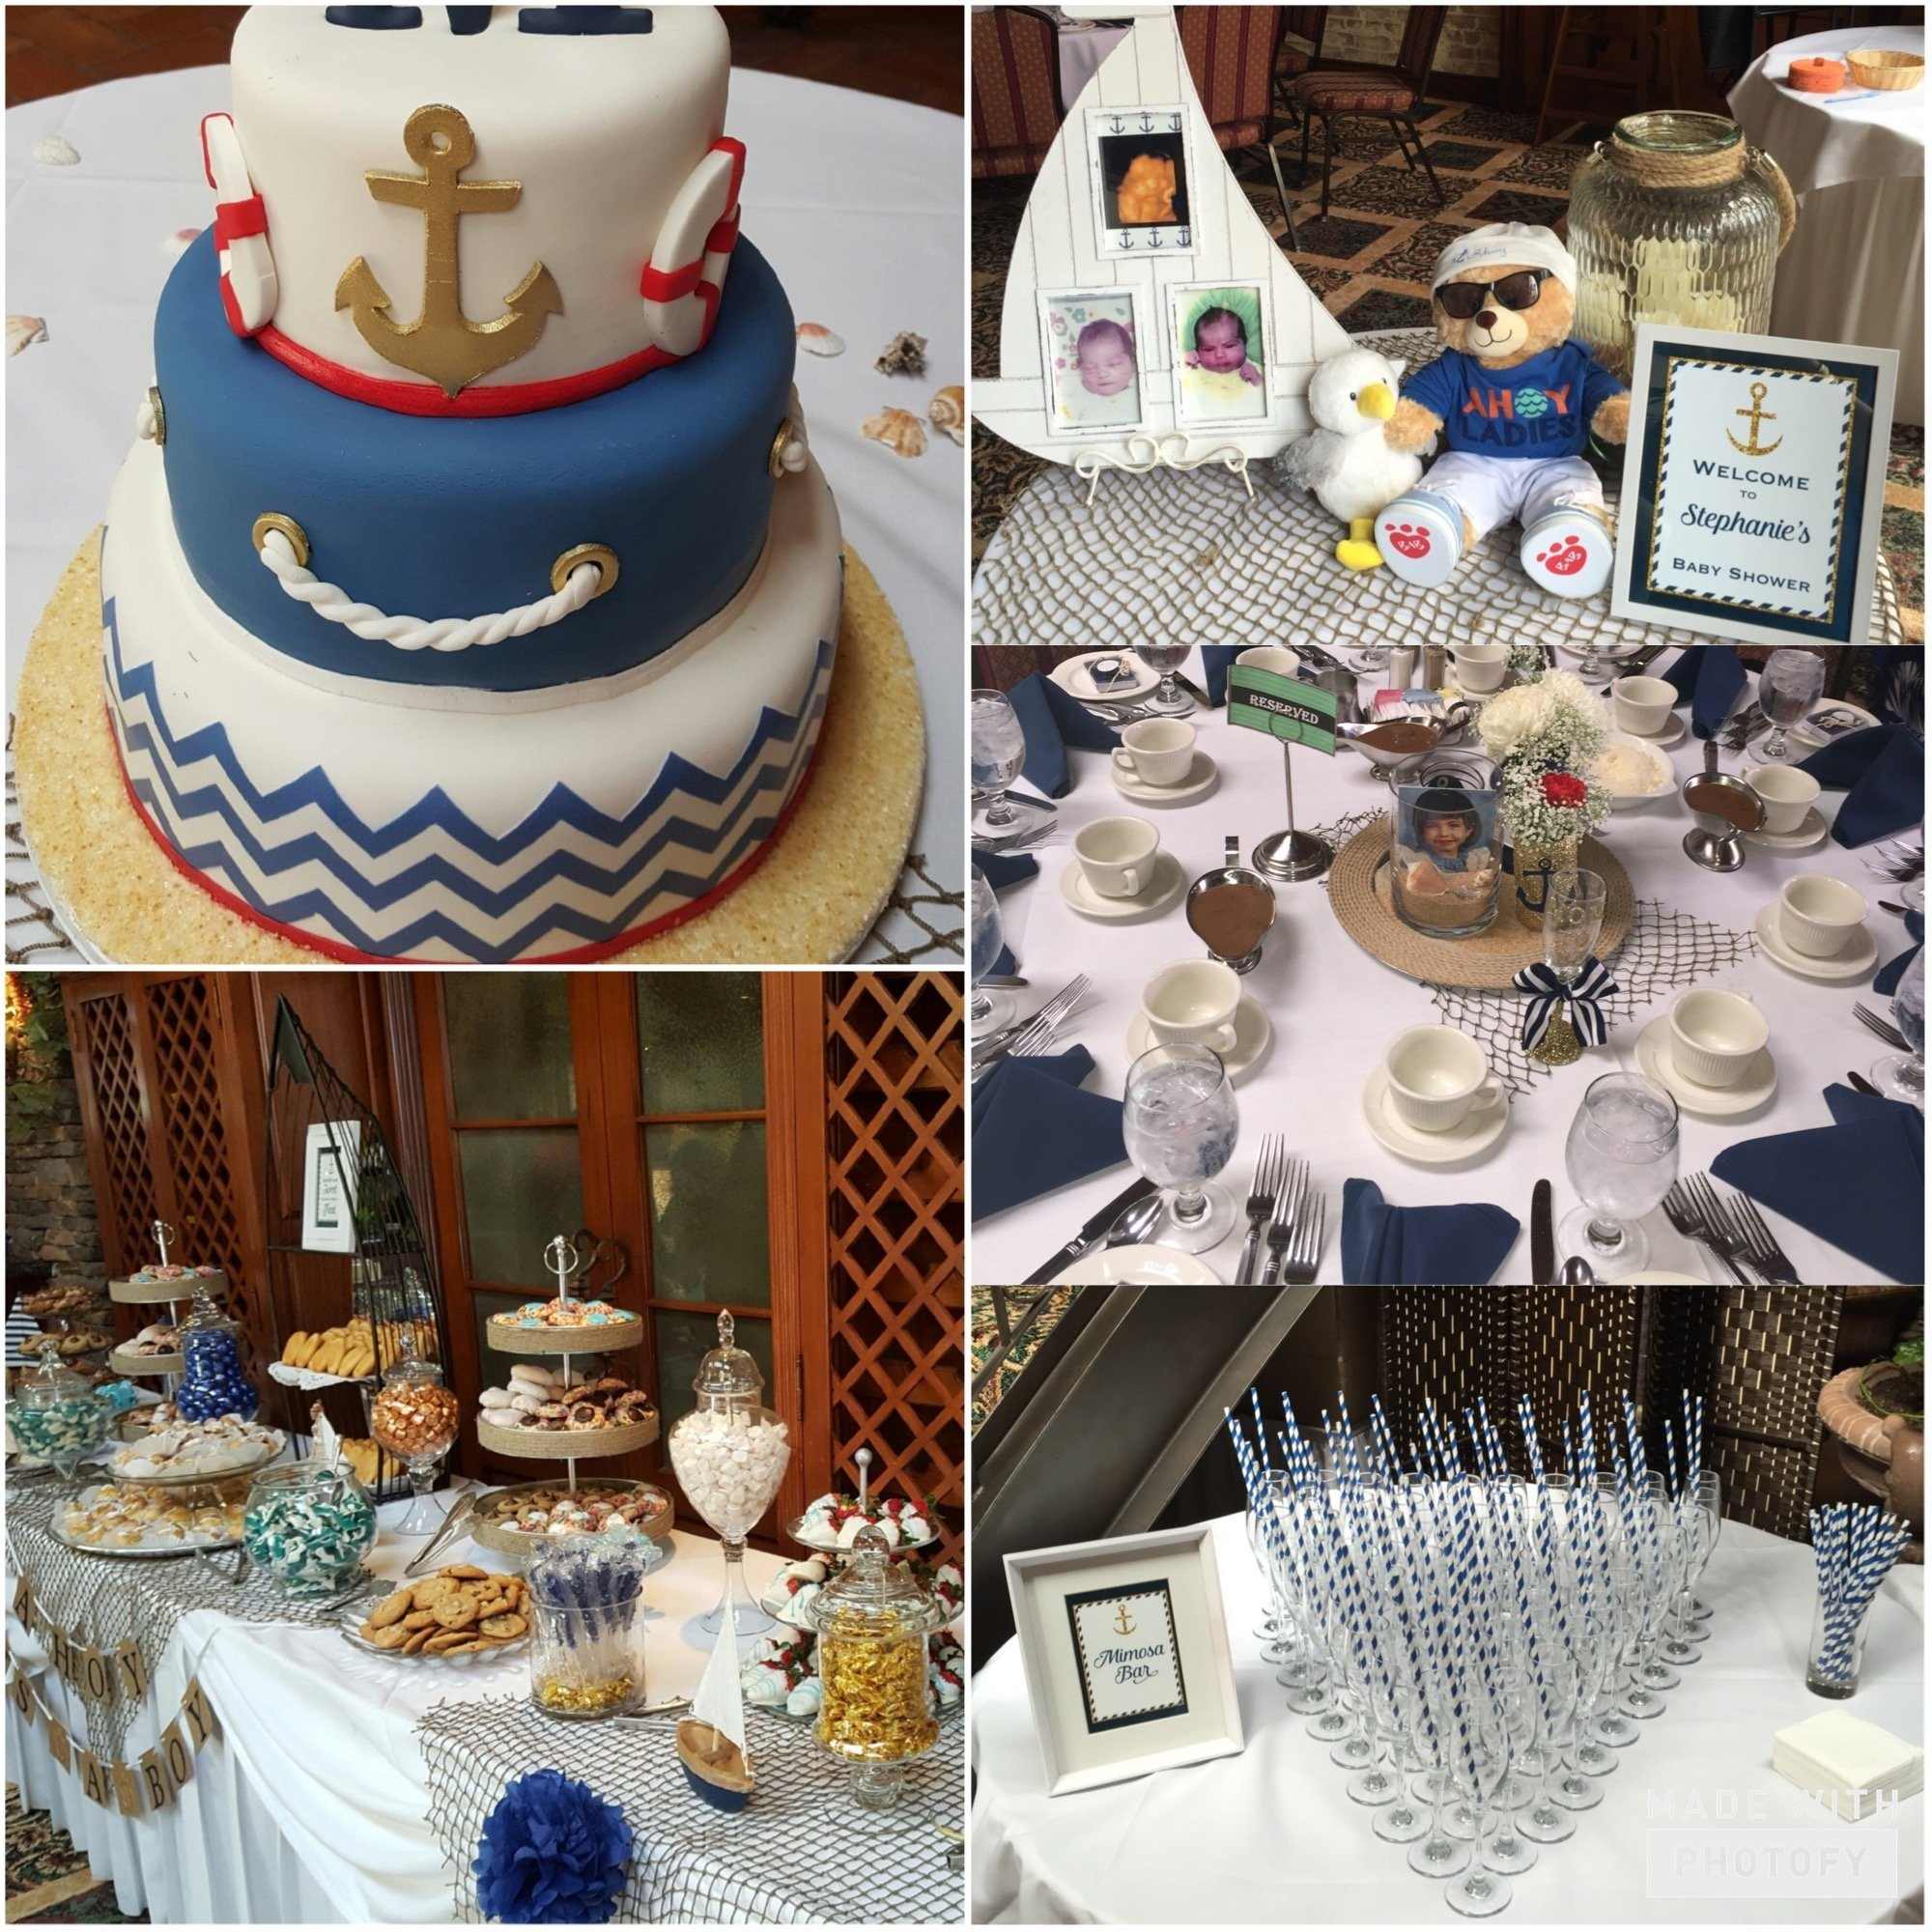 10 Ideal Ideas For A Baby Boy Shower impressive baby boy shower themes 12 oliveargyle 2021